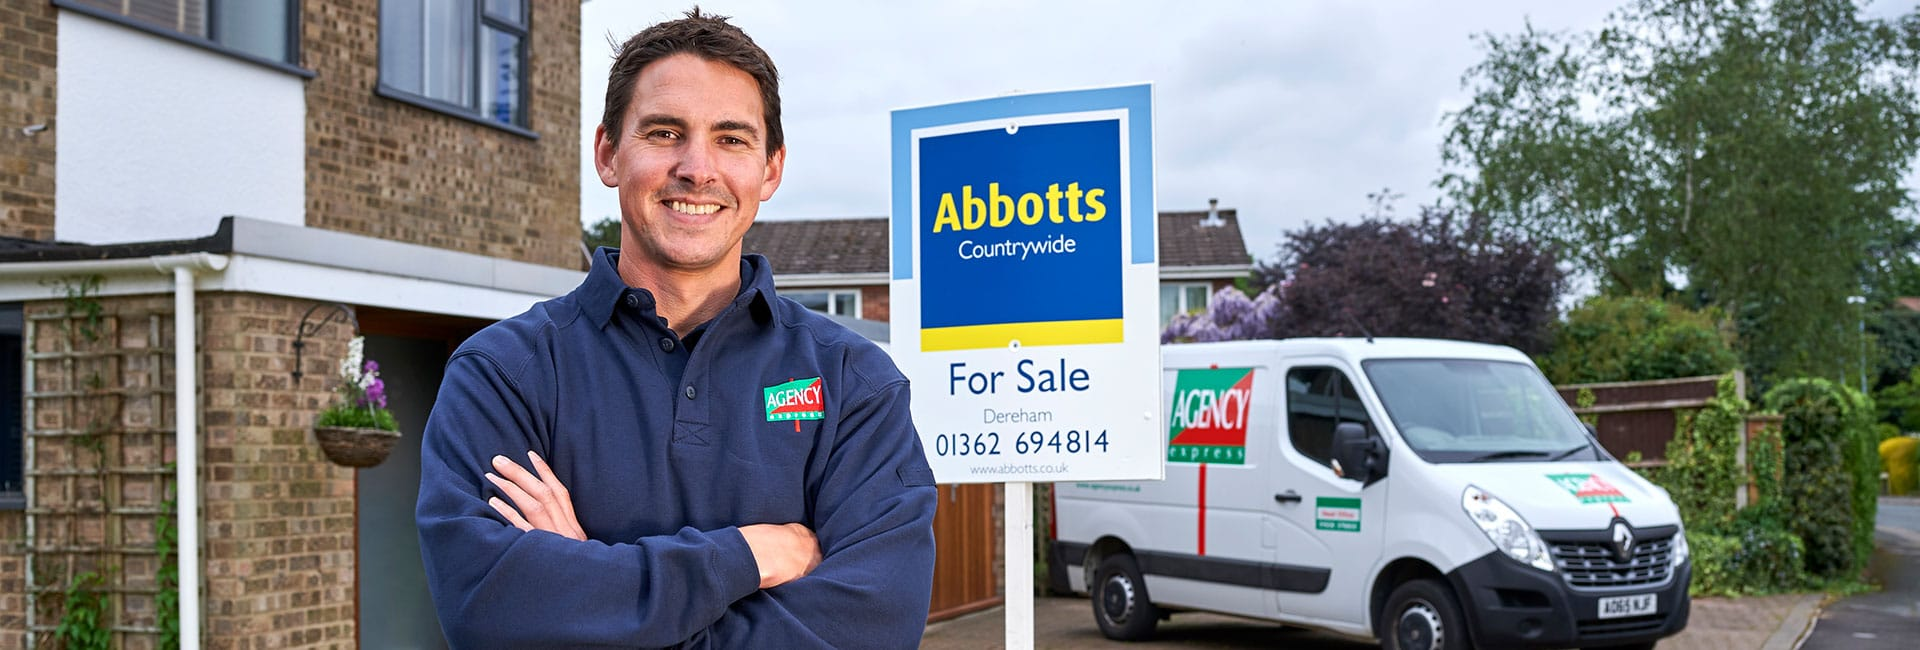 Agency Express operator and van outside a house with an estate agency board